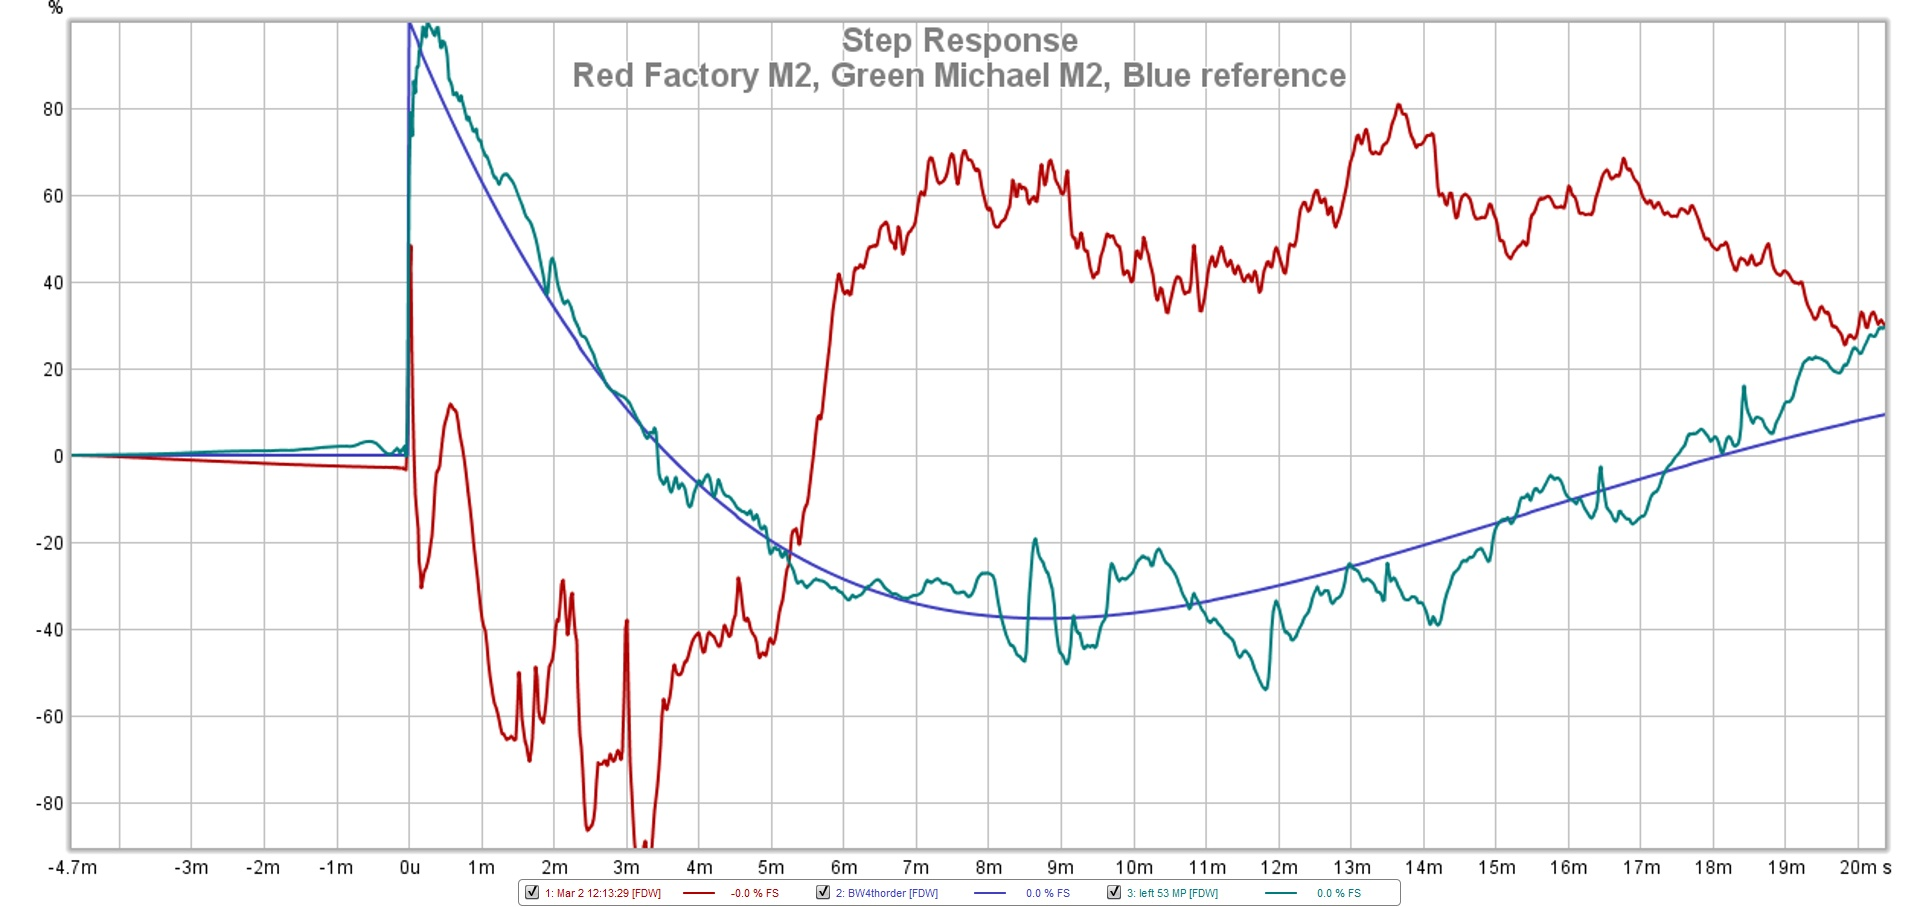 Red Factory M2 Green Michael M2 Blue reference 20ms.jpg